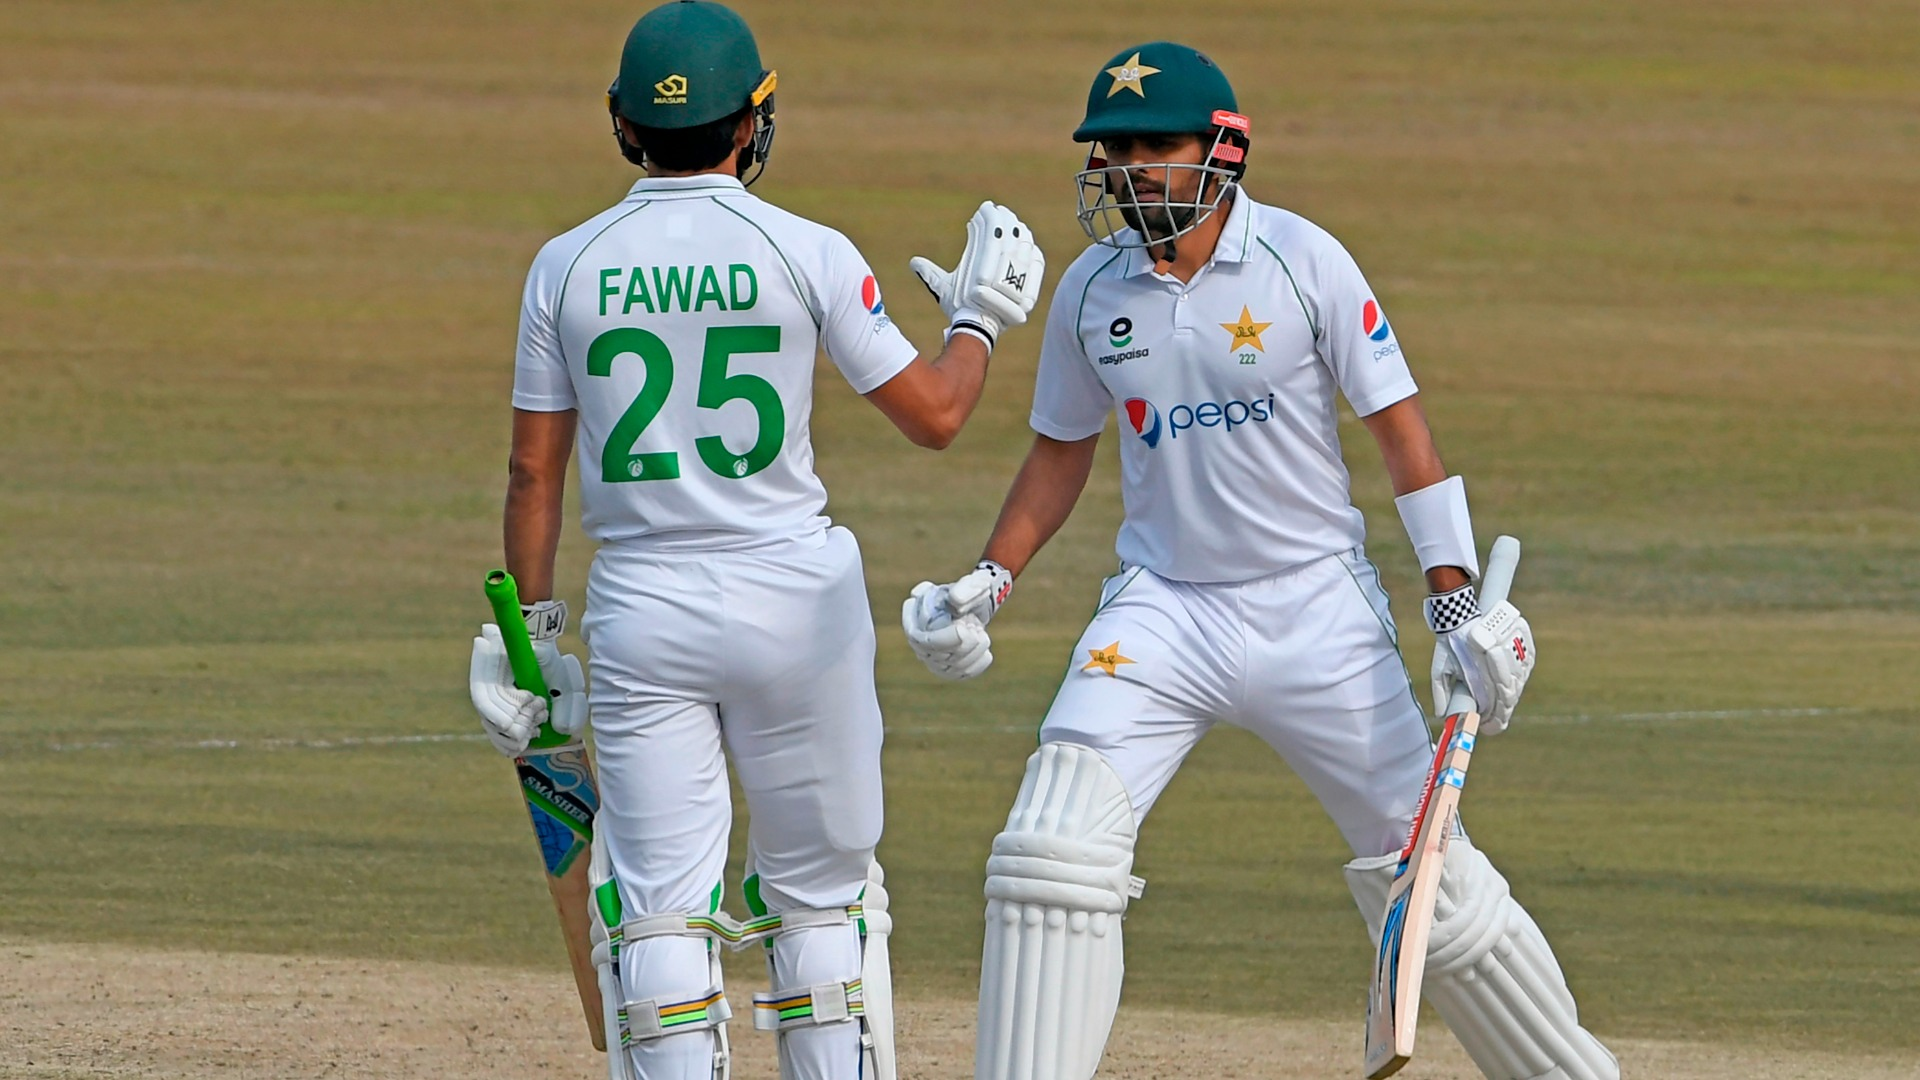 Babar and Fawad get Pakistan back on track after fast Proteas start